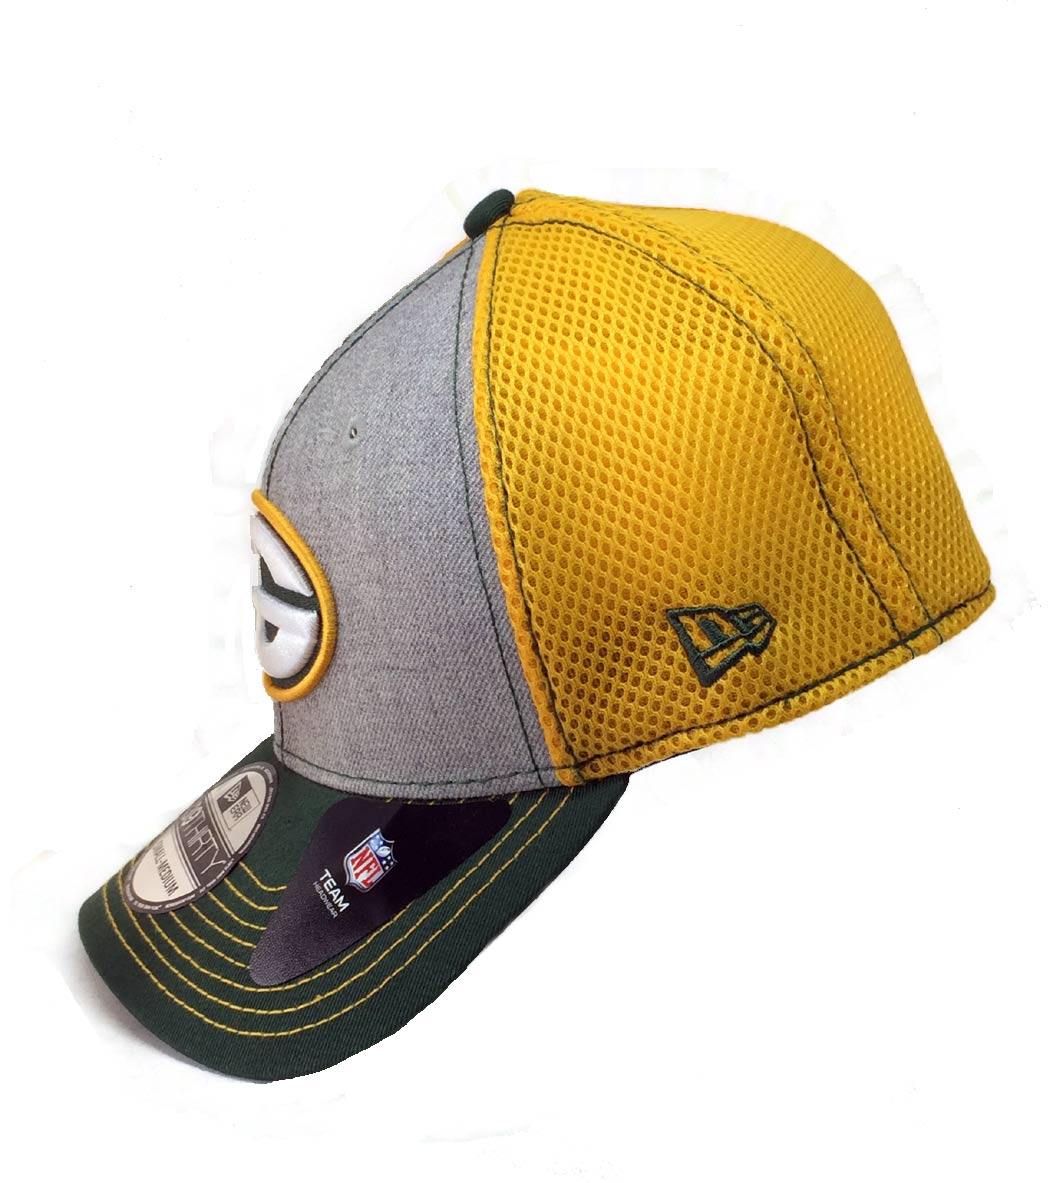 e2799c0443233 coupon code for green bay packers ball cap 40f1c 862a4